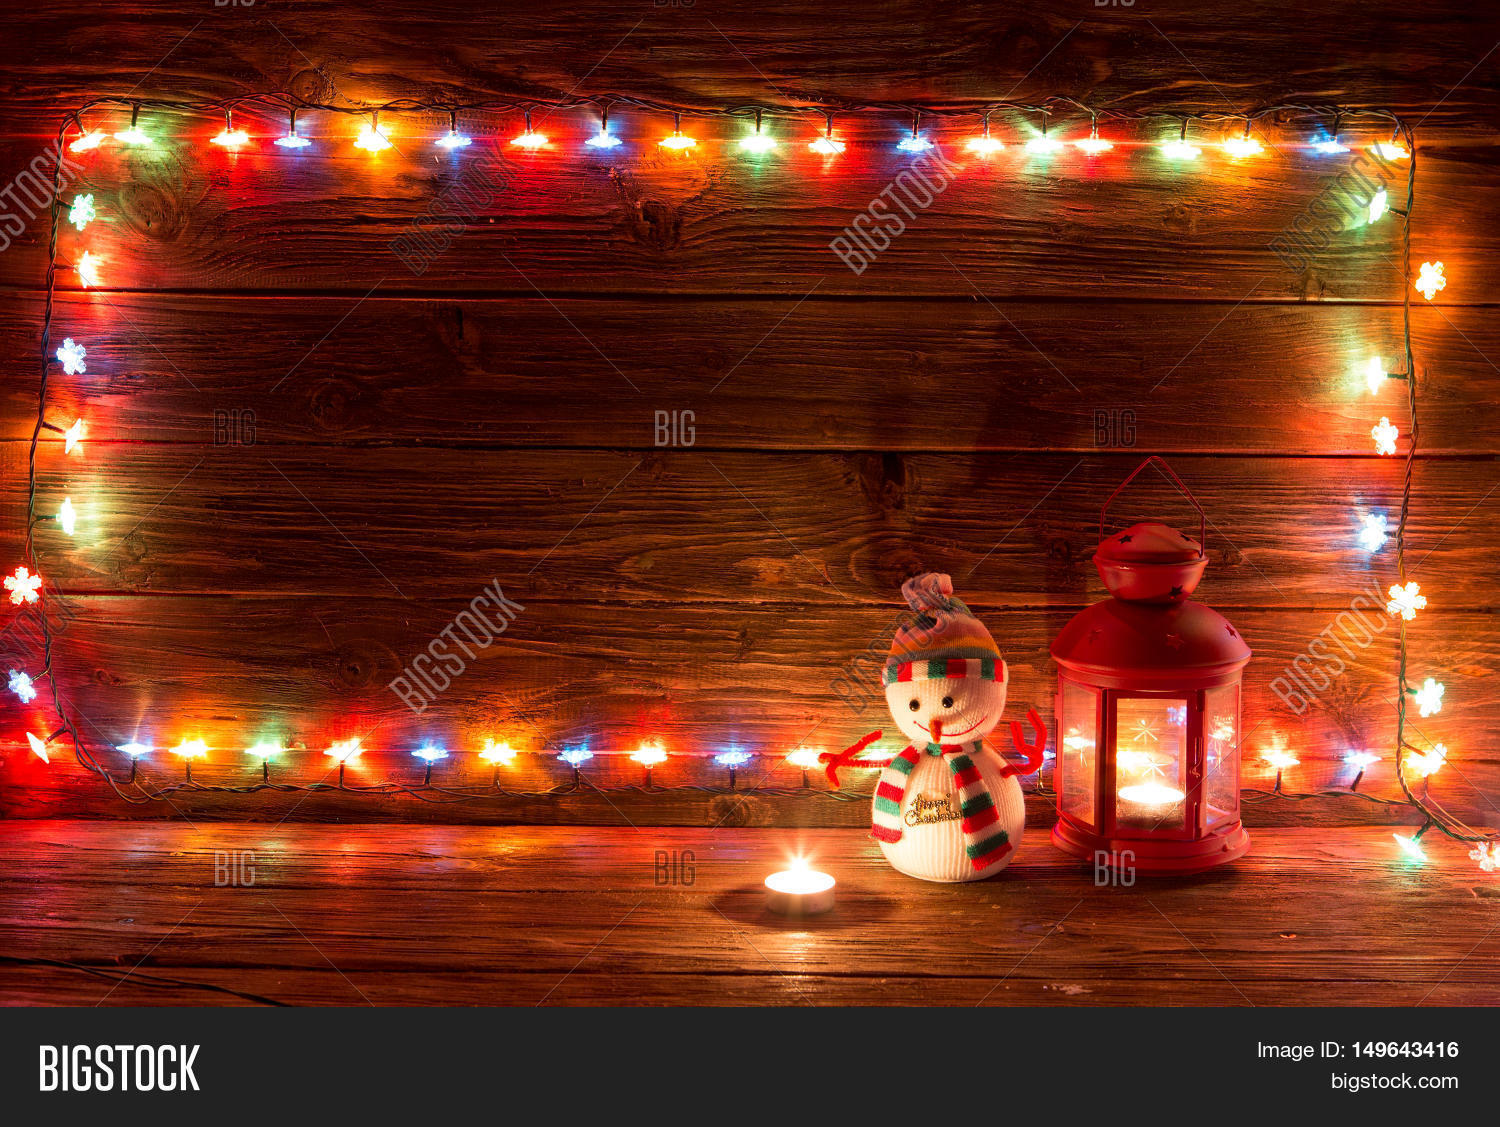 Christmas Lights And Vintage Lantern On Wooden Background